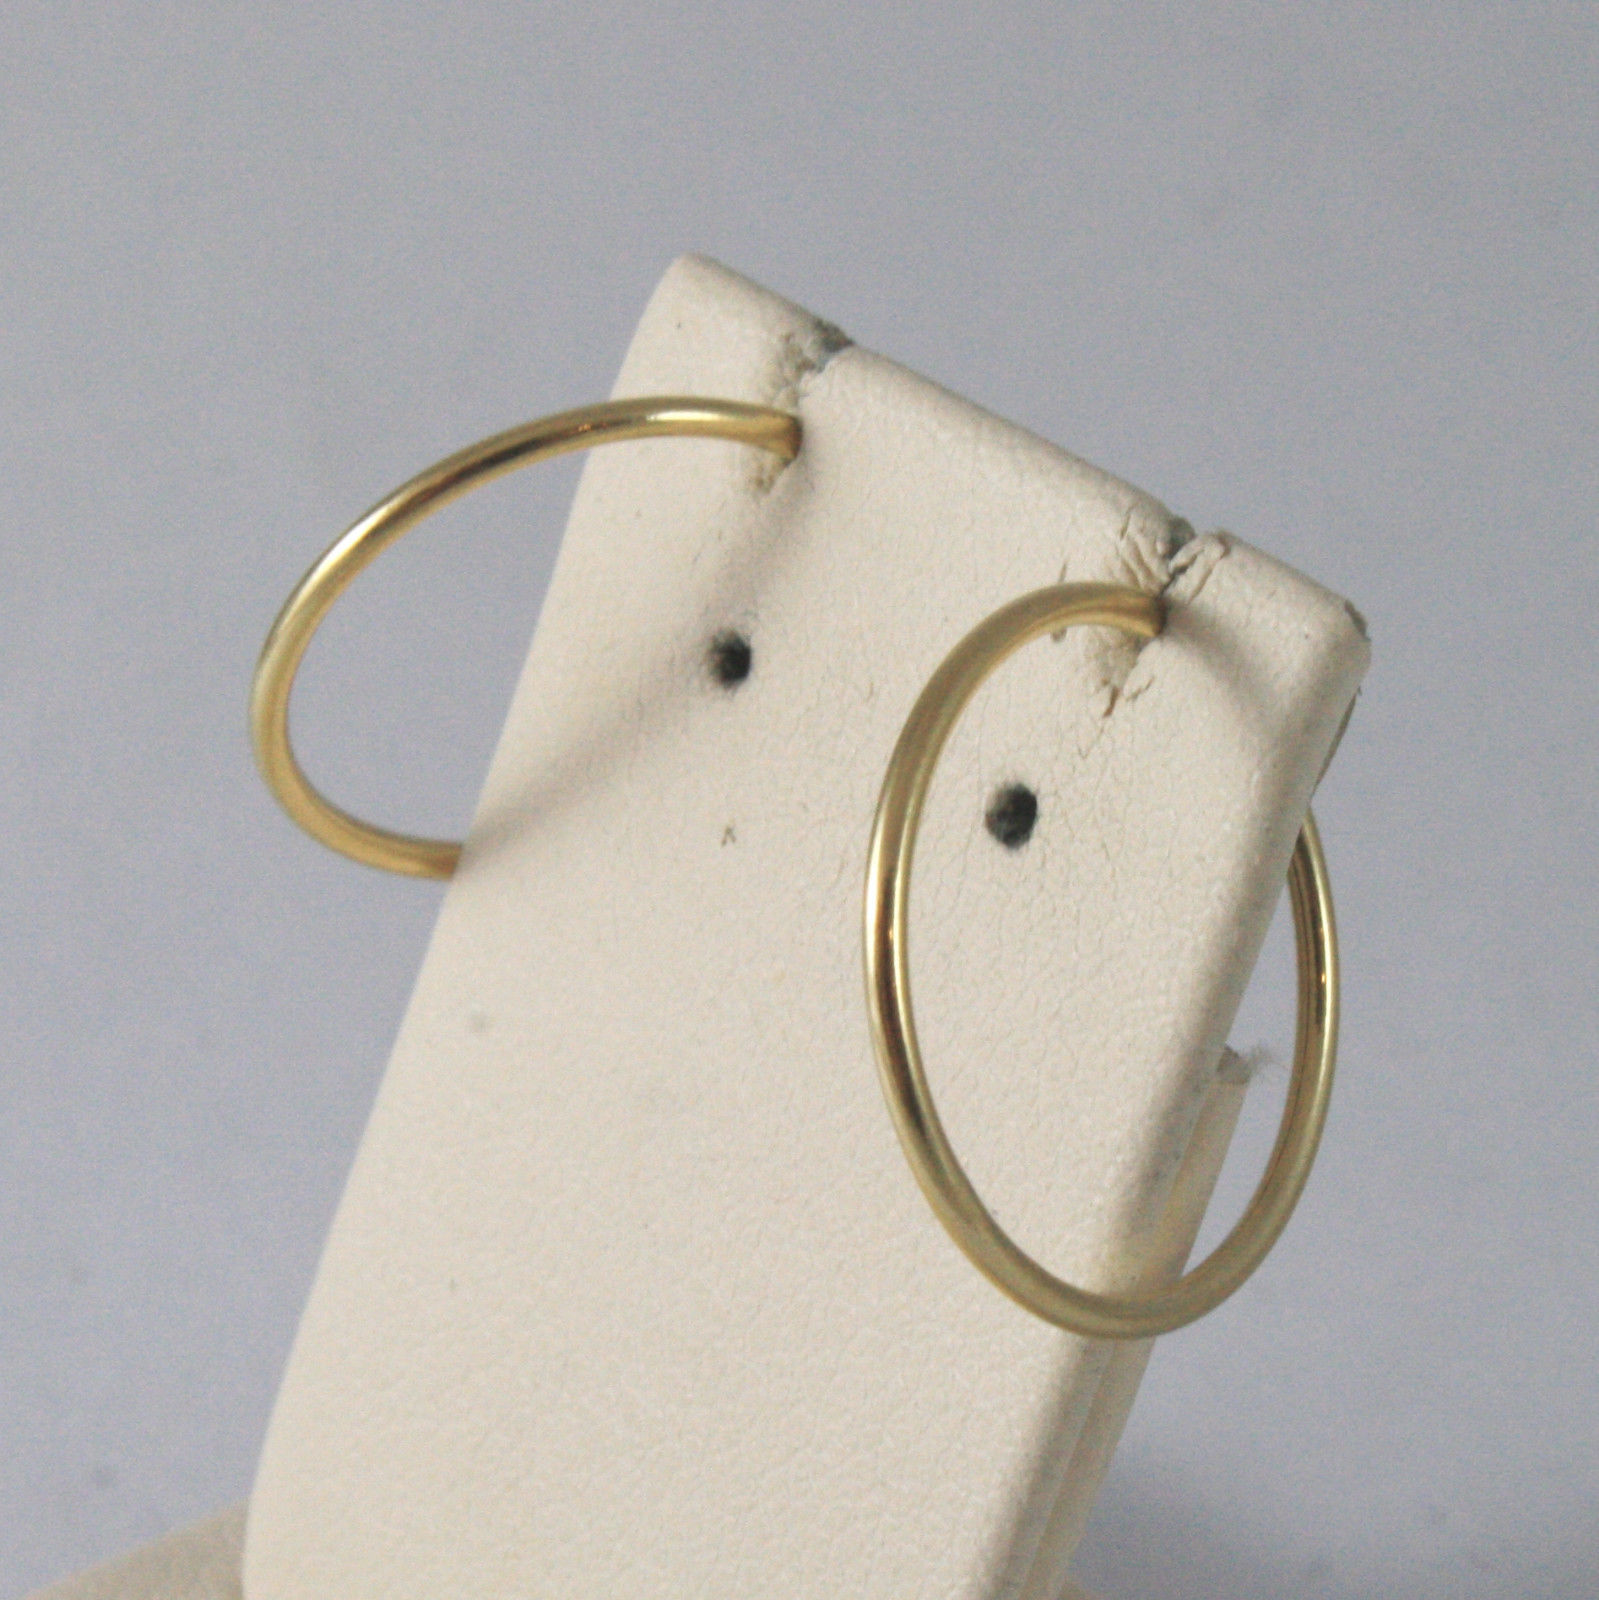 SOLID 18KT. YELLOW GOLD CIRCLE TUBE EARRINGS DIAMETER 0,63 IN MADE IN ITALY 18K